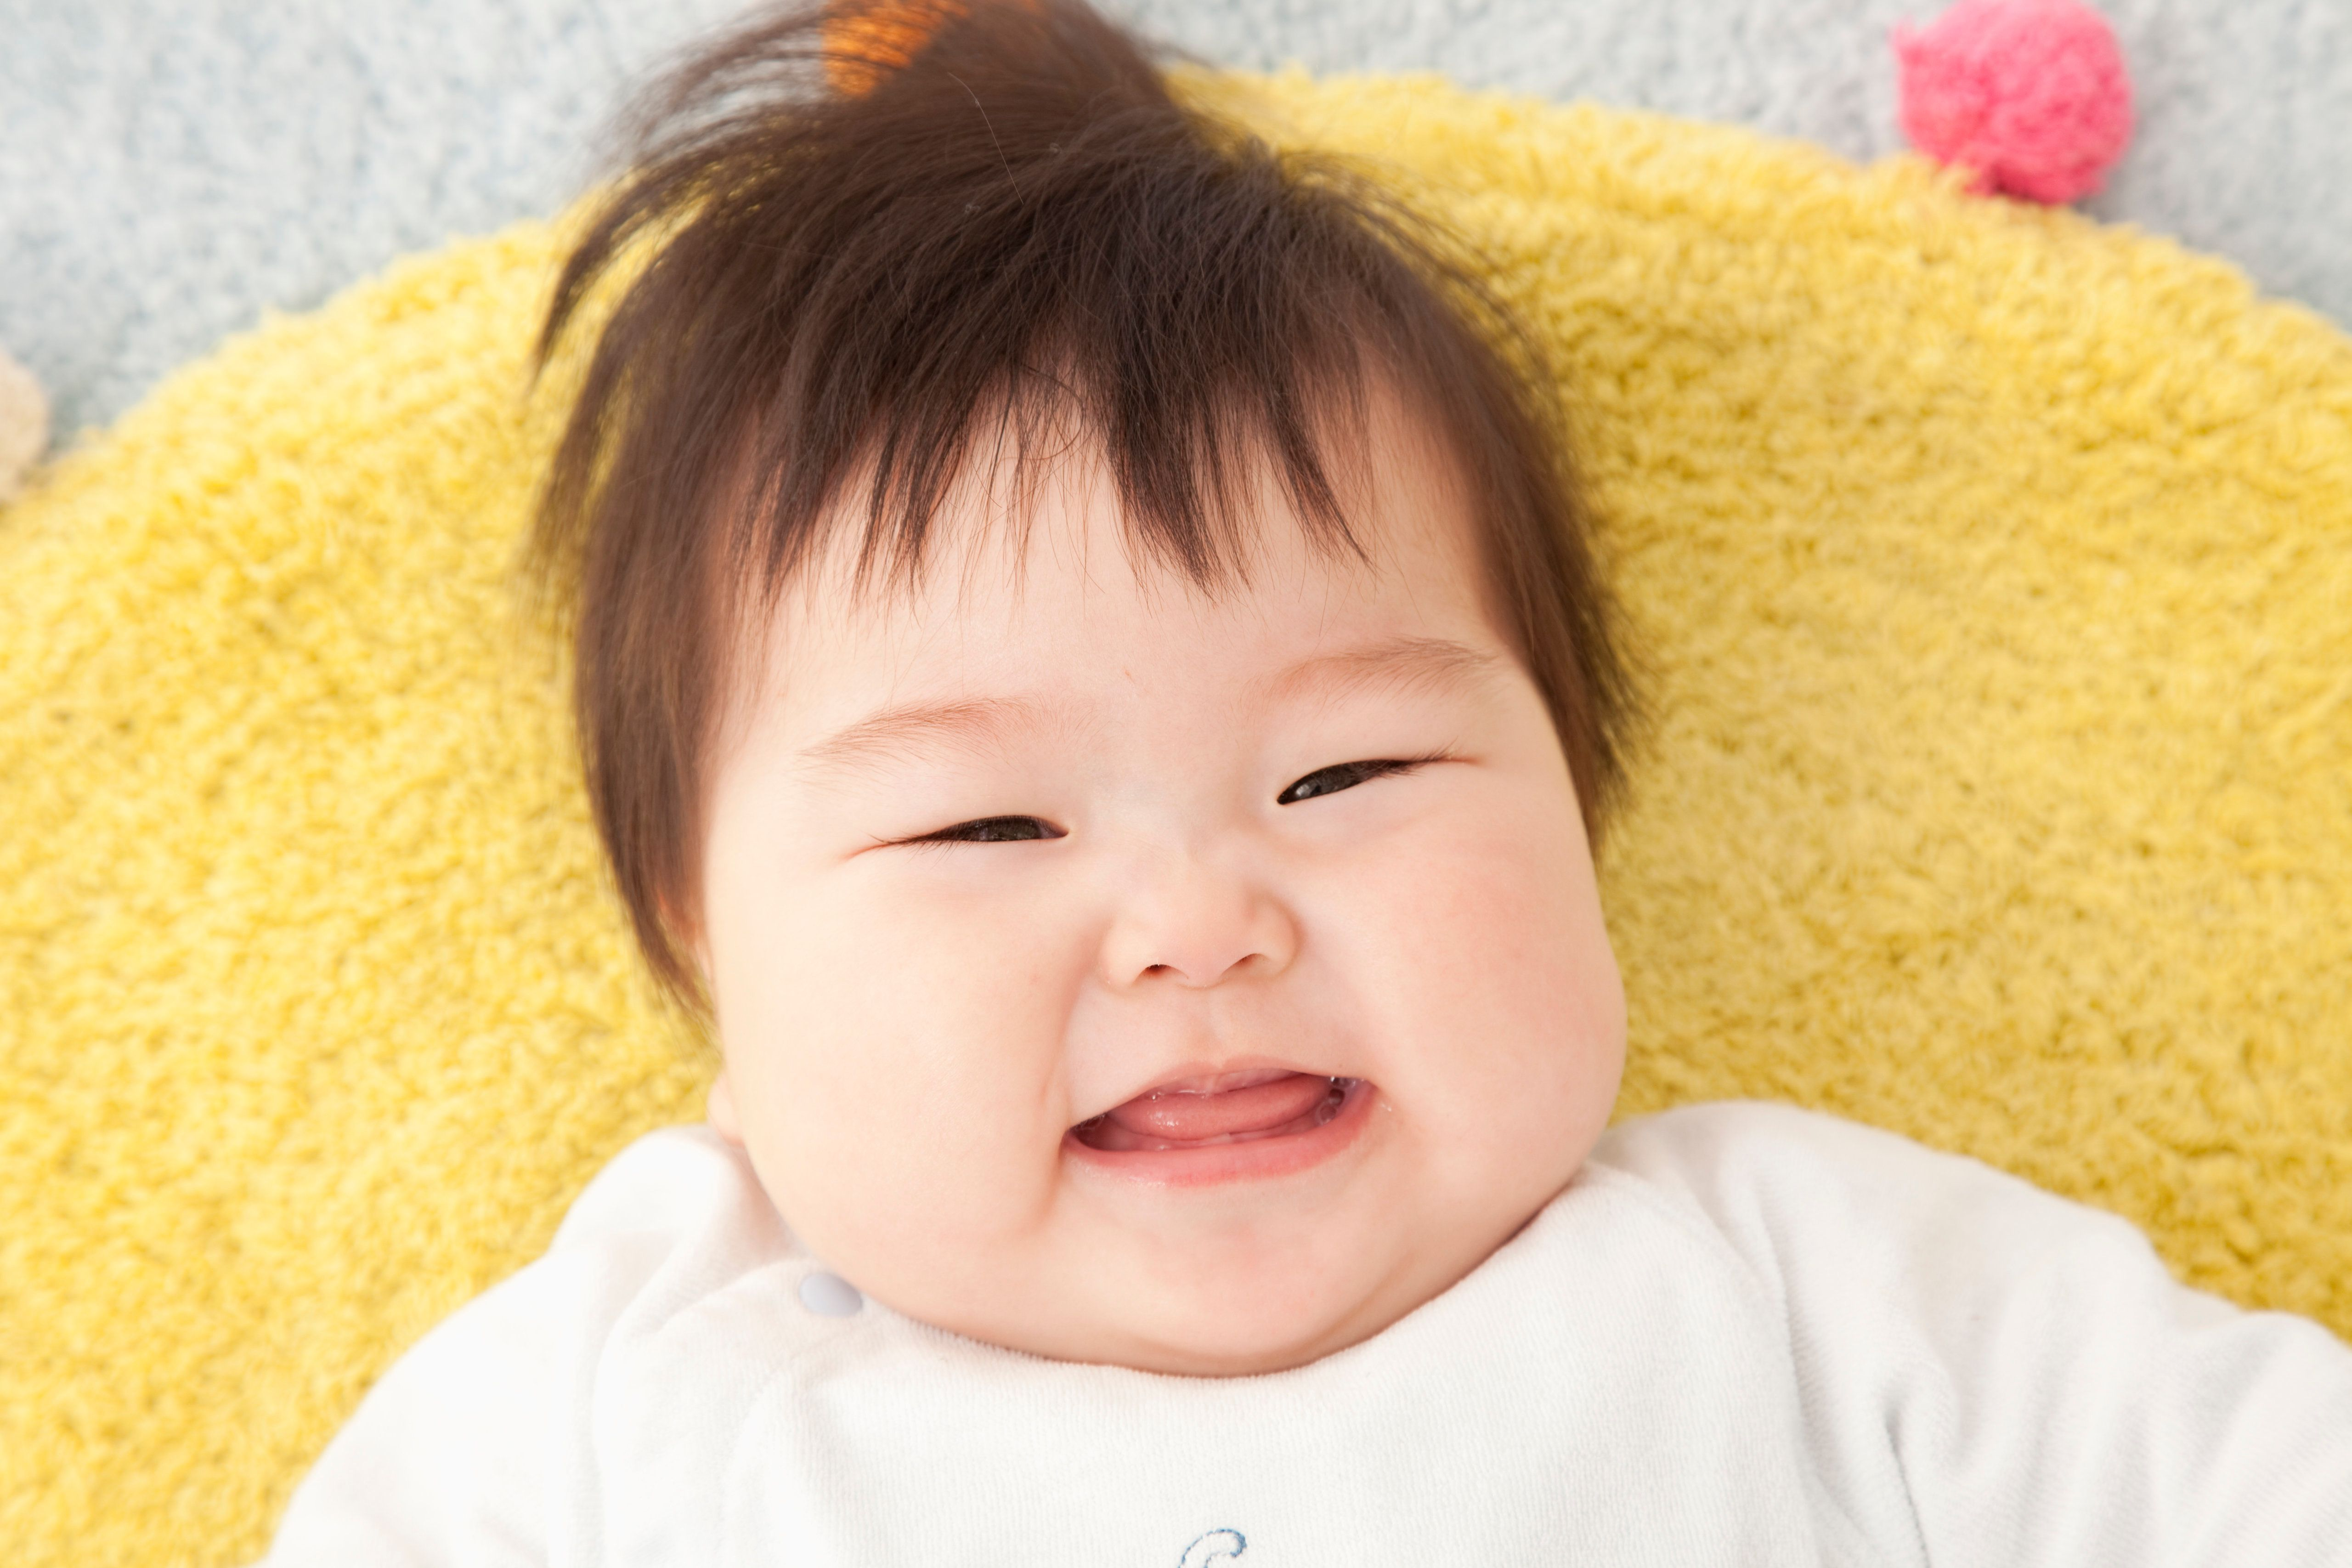 We've rounded up baby names that start with the letter 'A' — like Aria, Autumn, Axel and